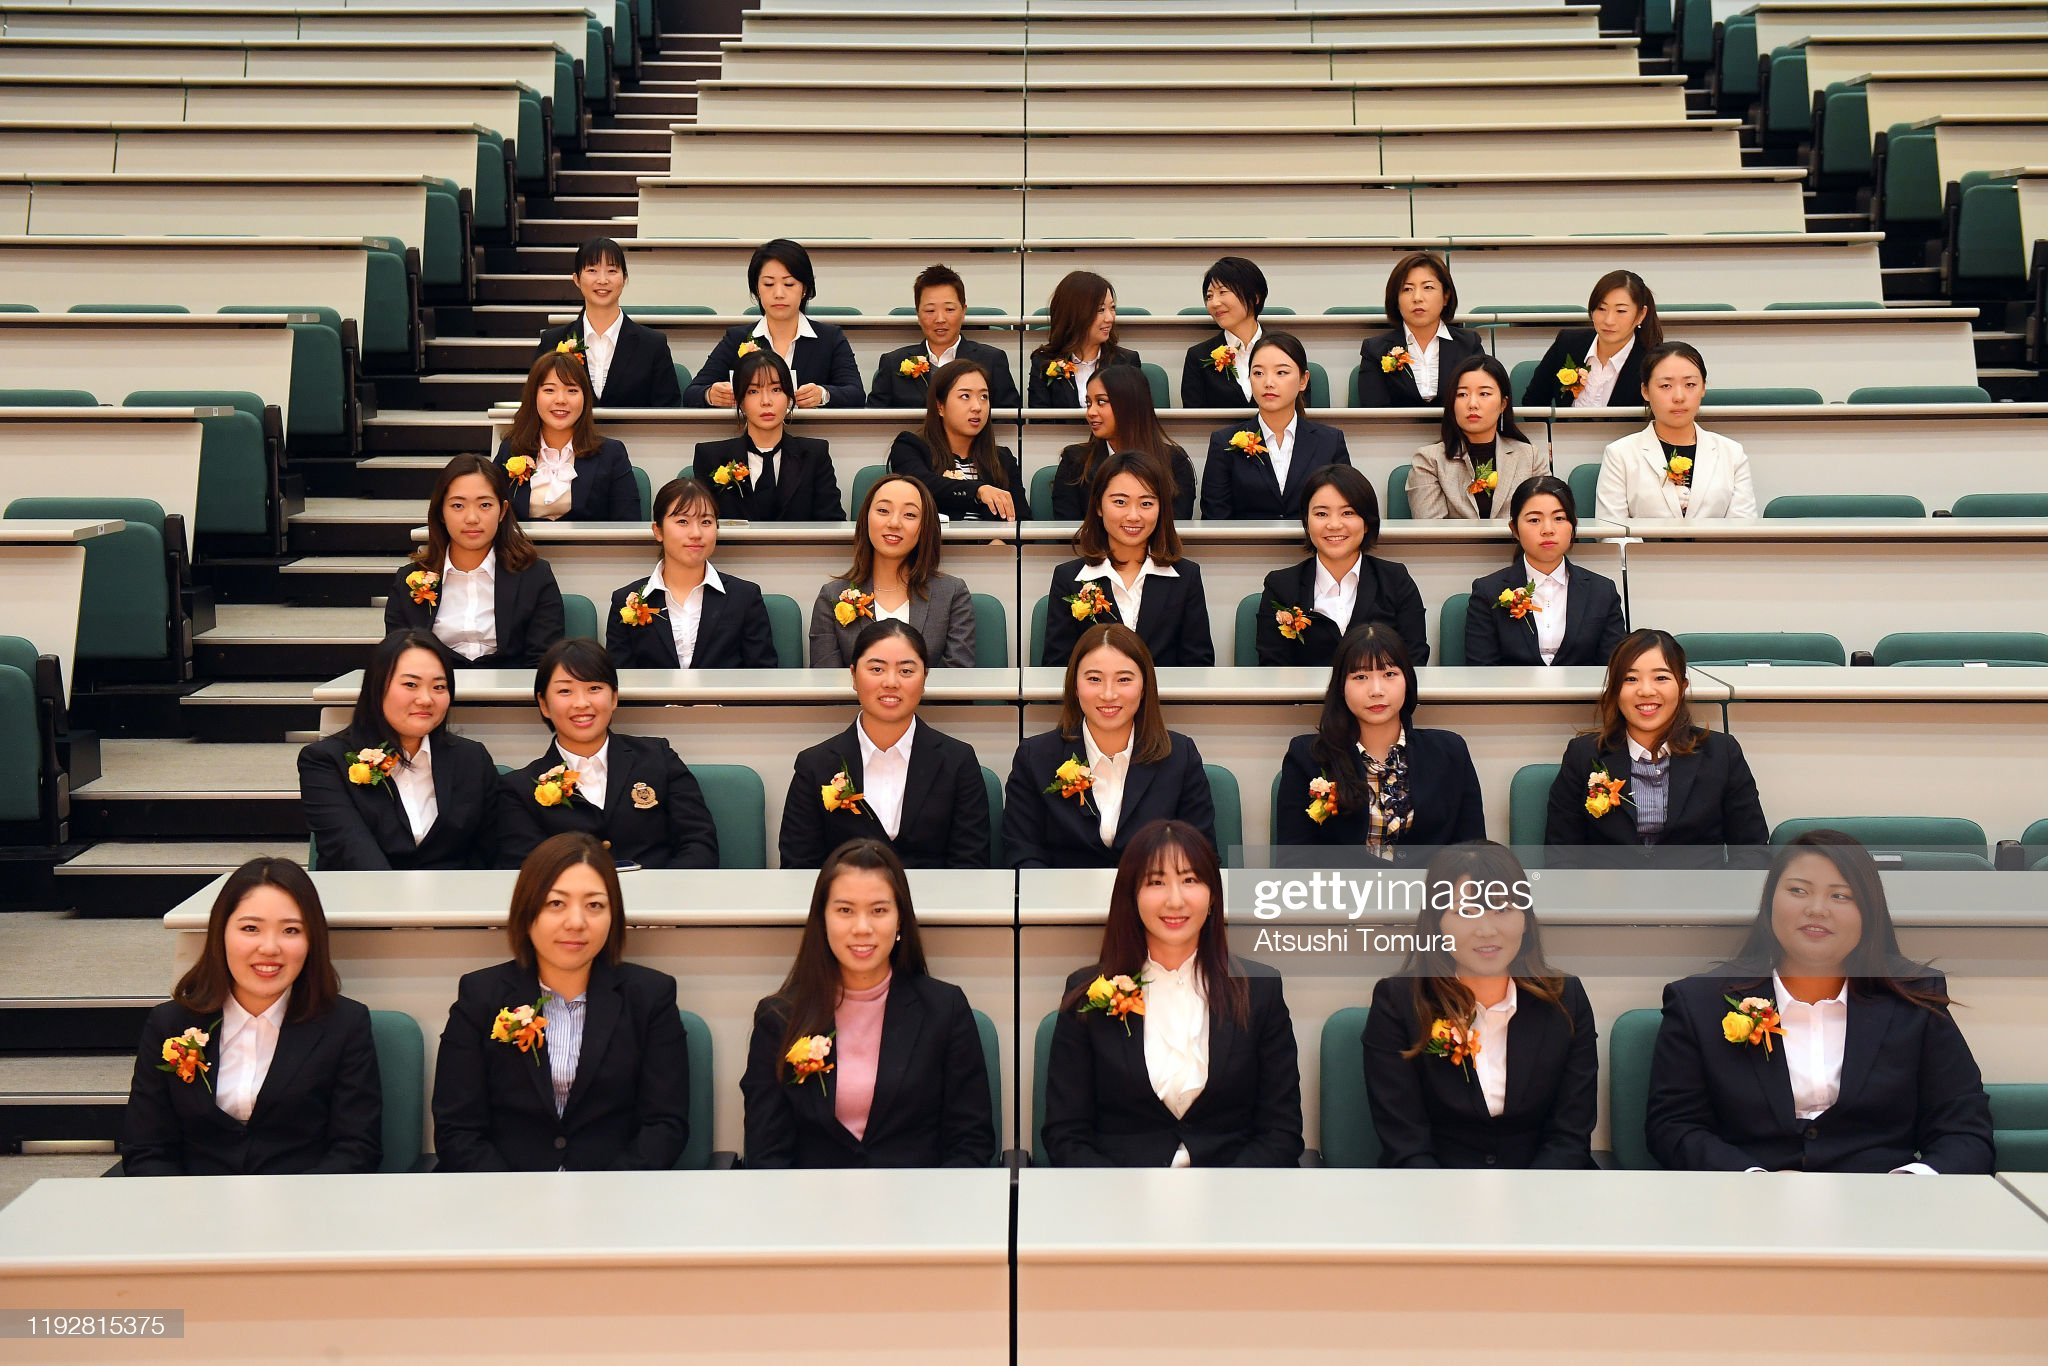 https://media.gettyimages.com/photos/japanese-lpga-2019-new-members-attend-the-welcome-ceremony-at-xwave-picture-id1192815375?s=2048x2048